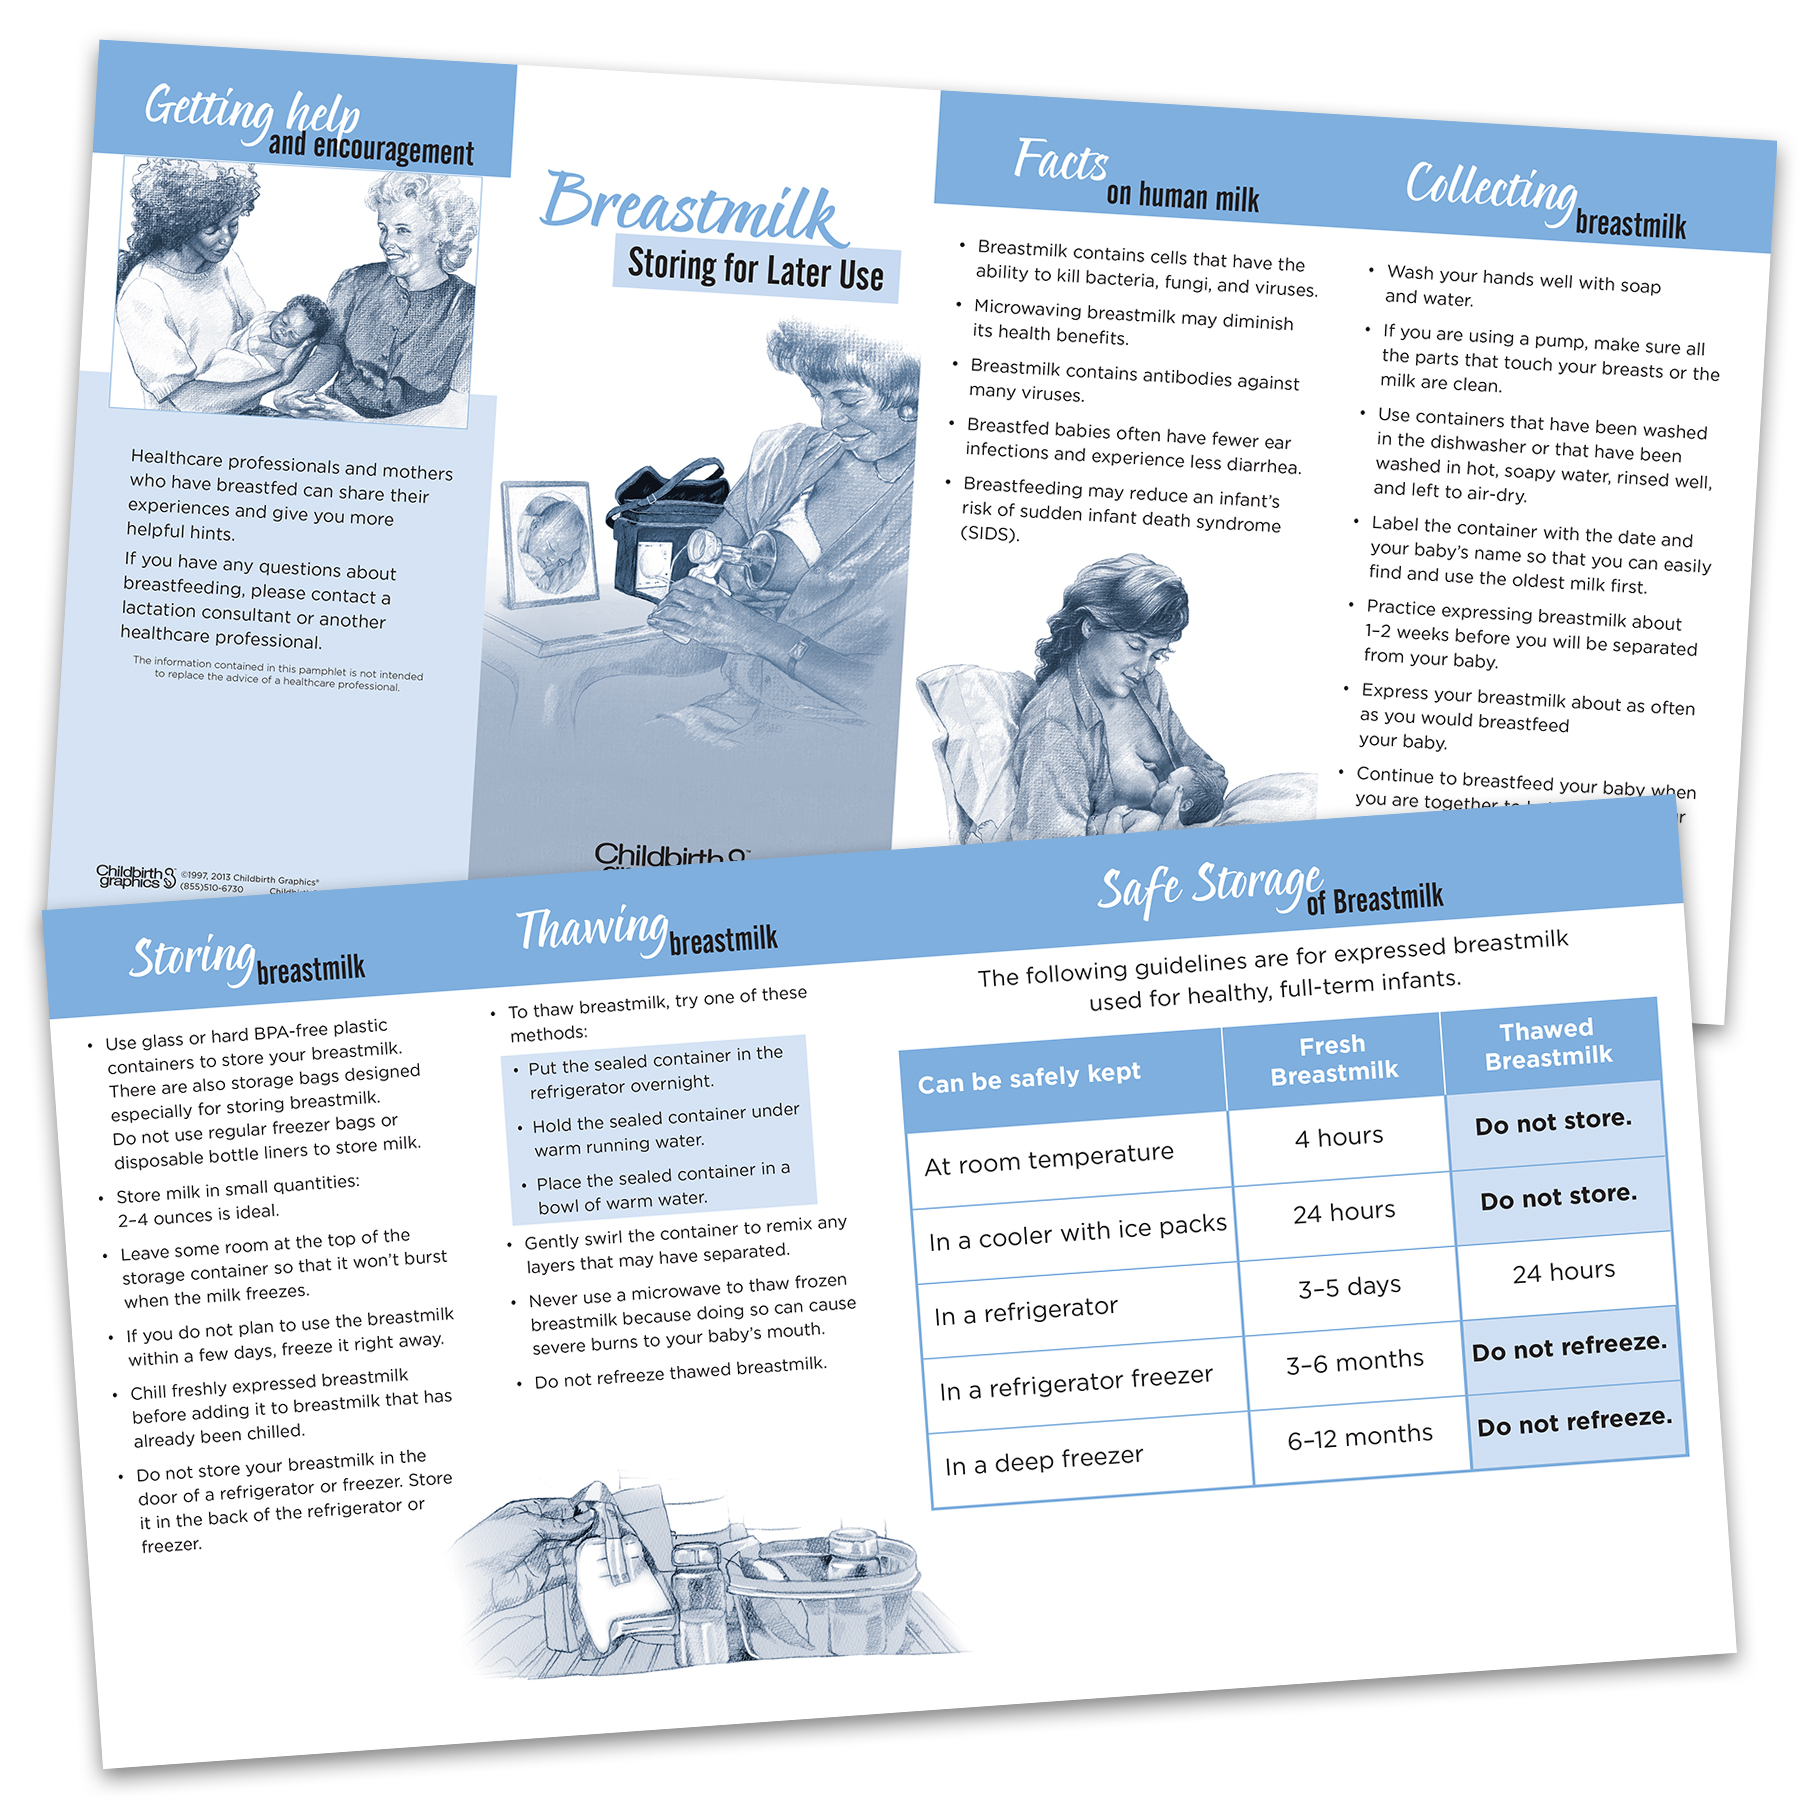 Breastmilk Storing for Later Use two-color illustrated pamphletfront and back, collecting and storing breastmilk, Childbirth Graphics, 38651